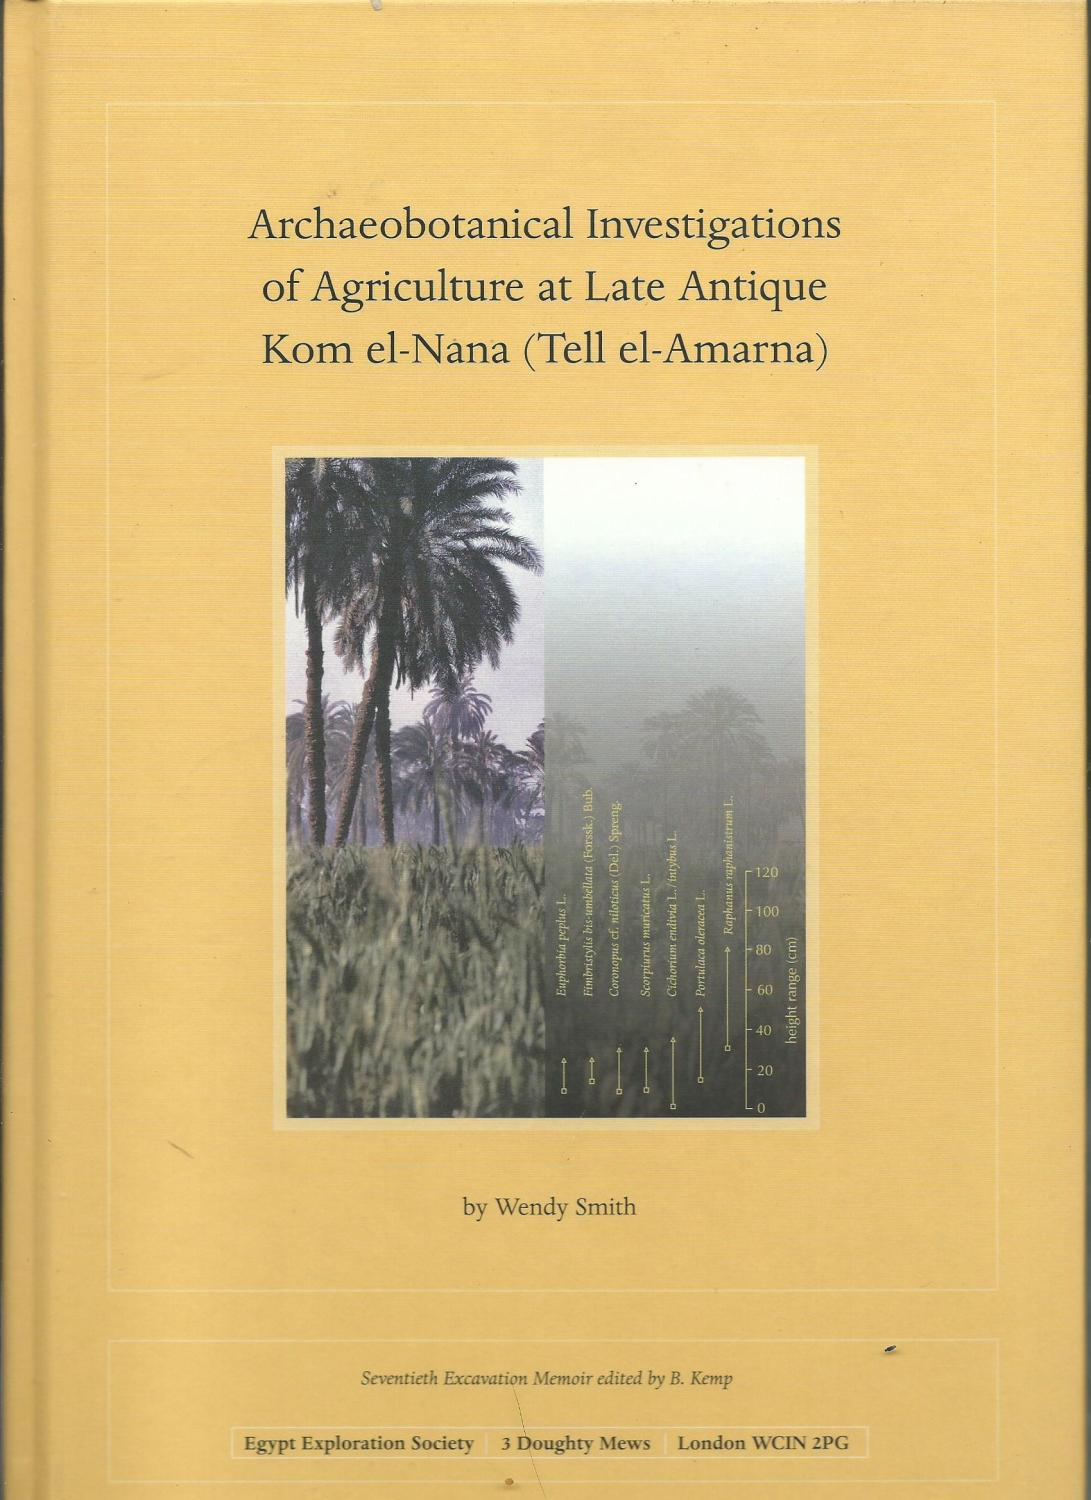 Archaeobotanical Investigations of Agriculture at Late Antique Kom El-Nana (Tell El-Amarna) - Smith, Wendy